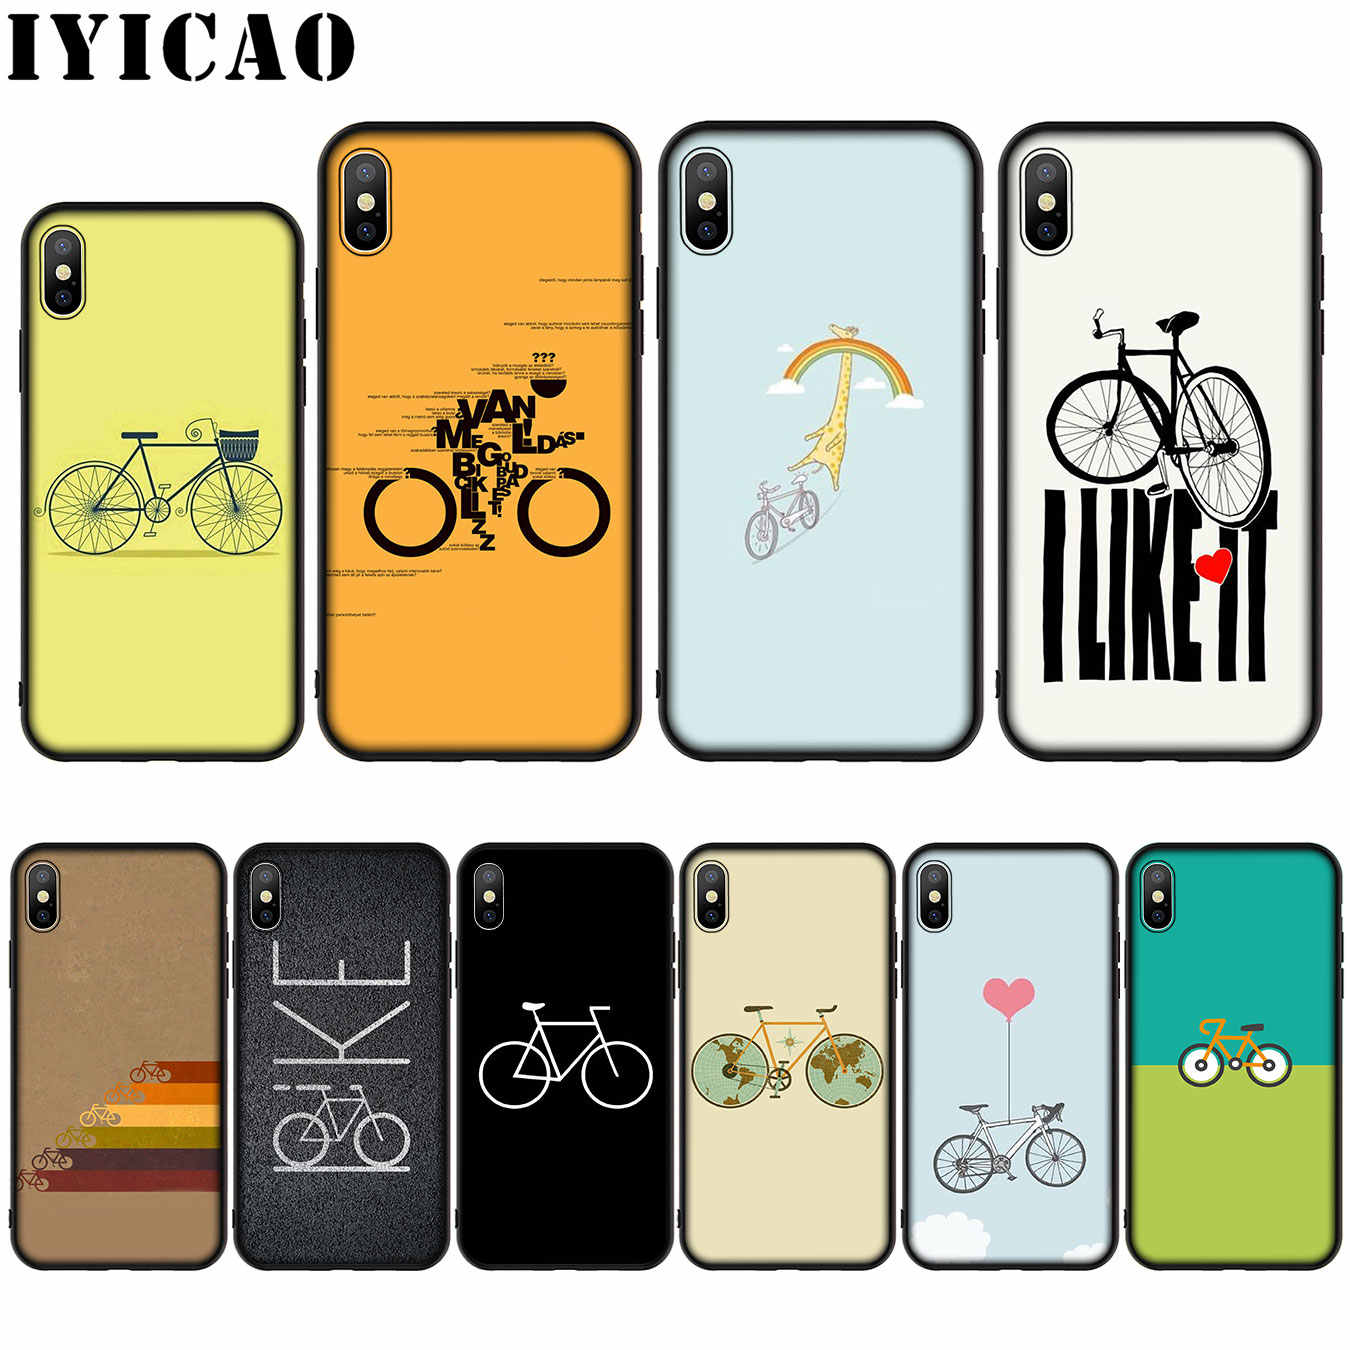 Bicycle Bike Sport Coqu Silicone Soft Case for iPhone 11 Pro Max XR X XS Max 8 7 6 6S Plus 5 5S SE Cover